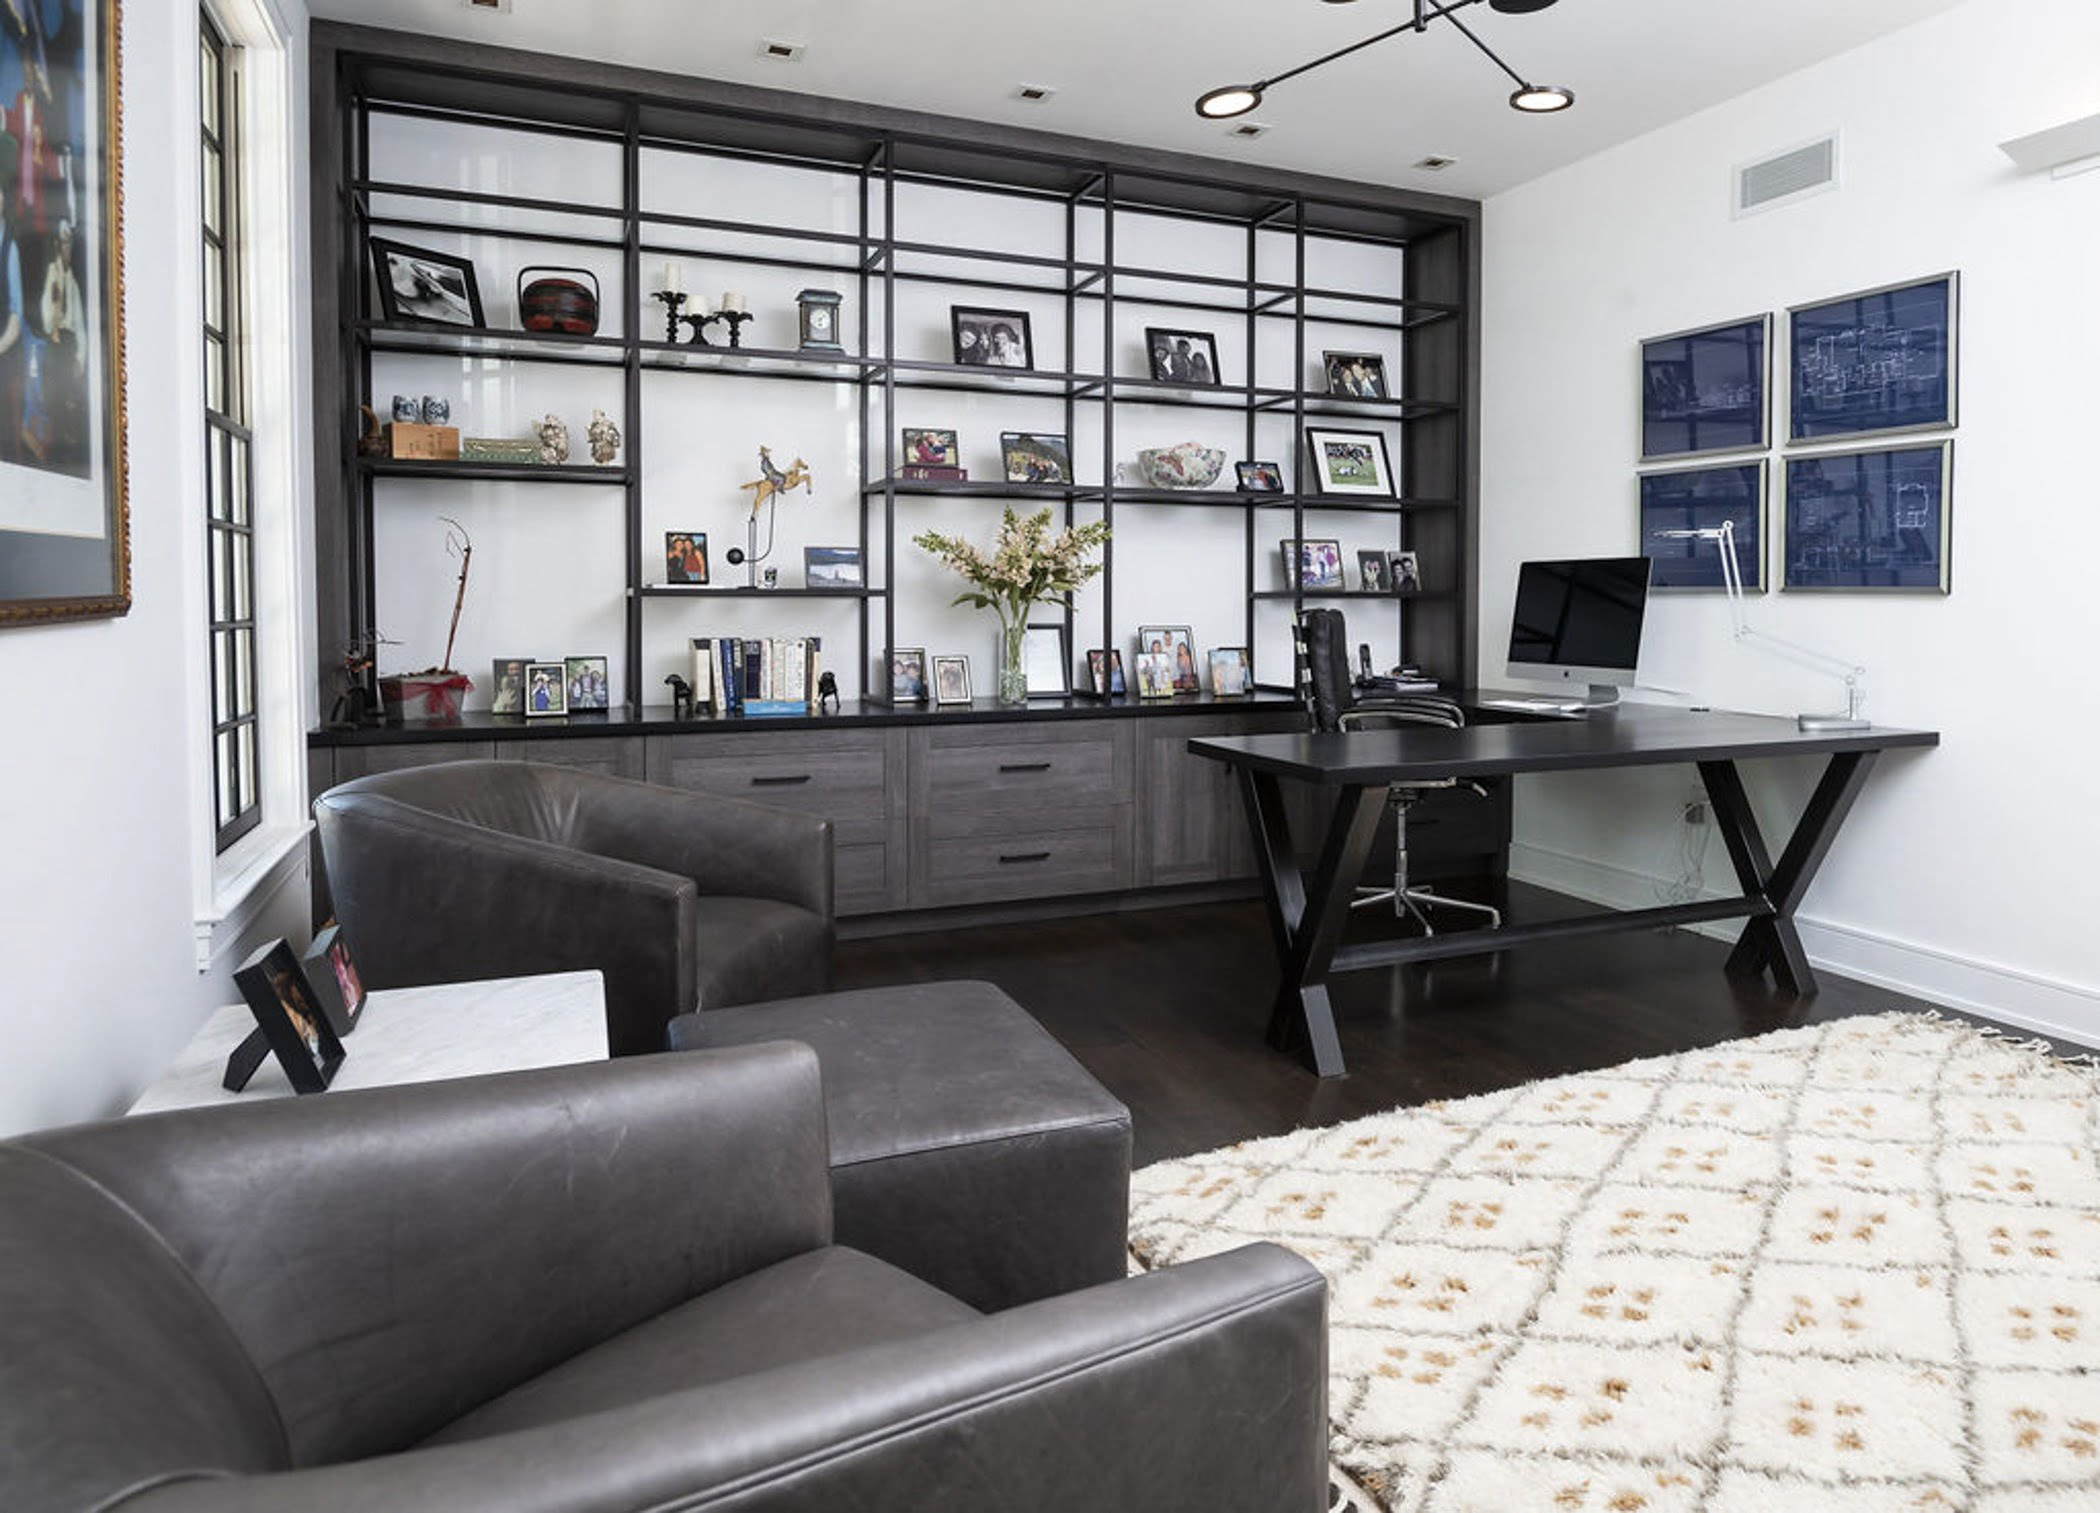 Modern and luxurious office space with dark wood floors, wall to wall shelving and leather furniture